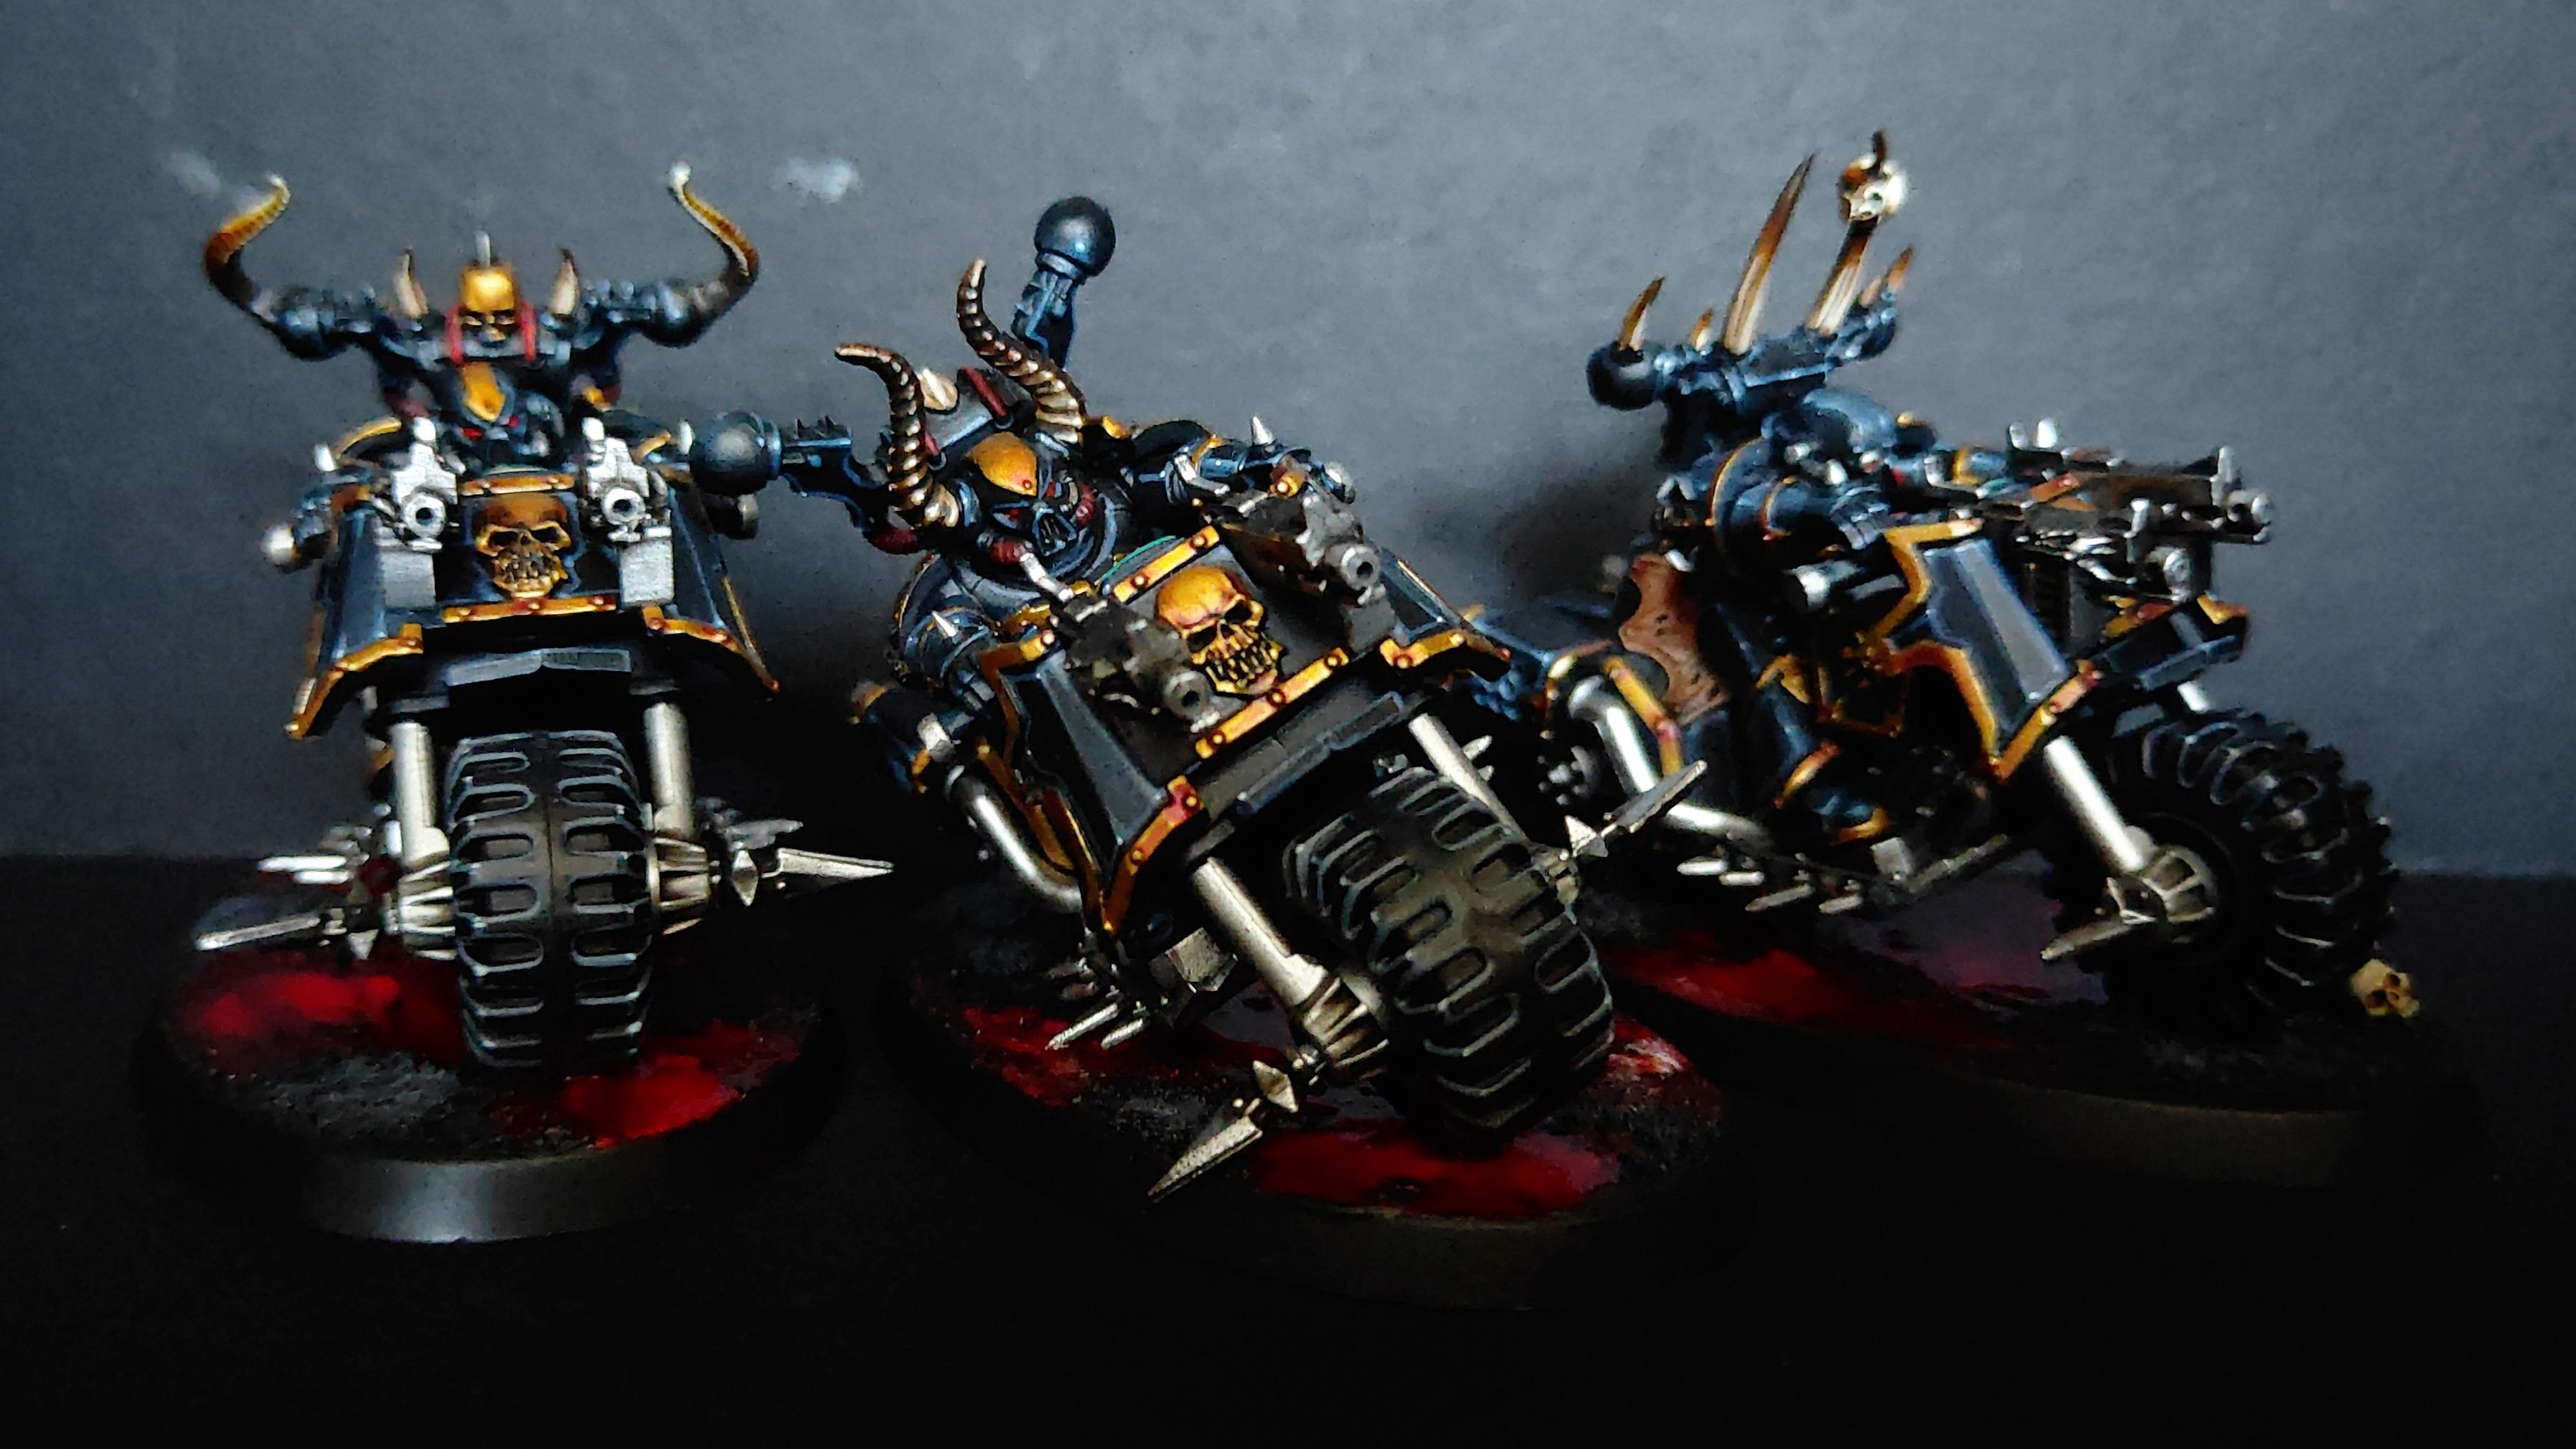 Bike, Black Legion, Chaos, Chaos Bikers, Chaos Knight, Chaos Space Marines, Chaos Undivided, Heretic Astartes, Possessed, Sin Eaters, Warhammer 40,000